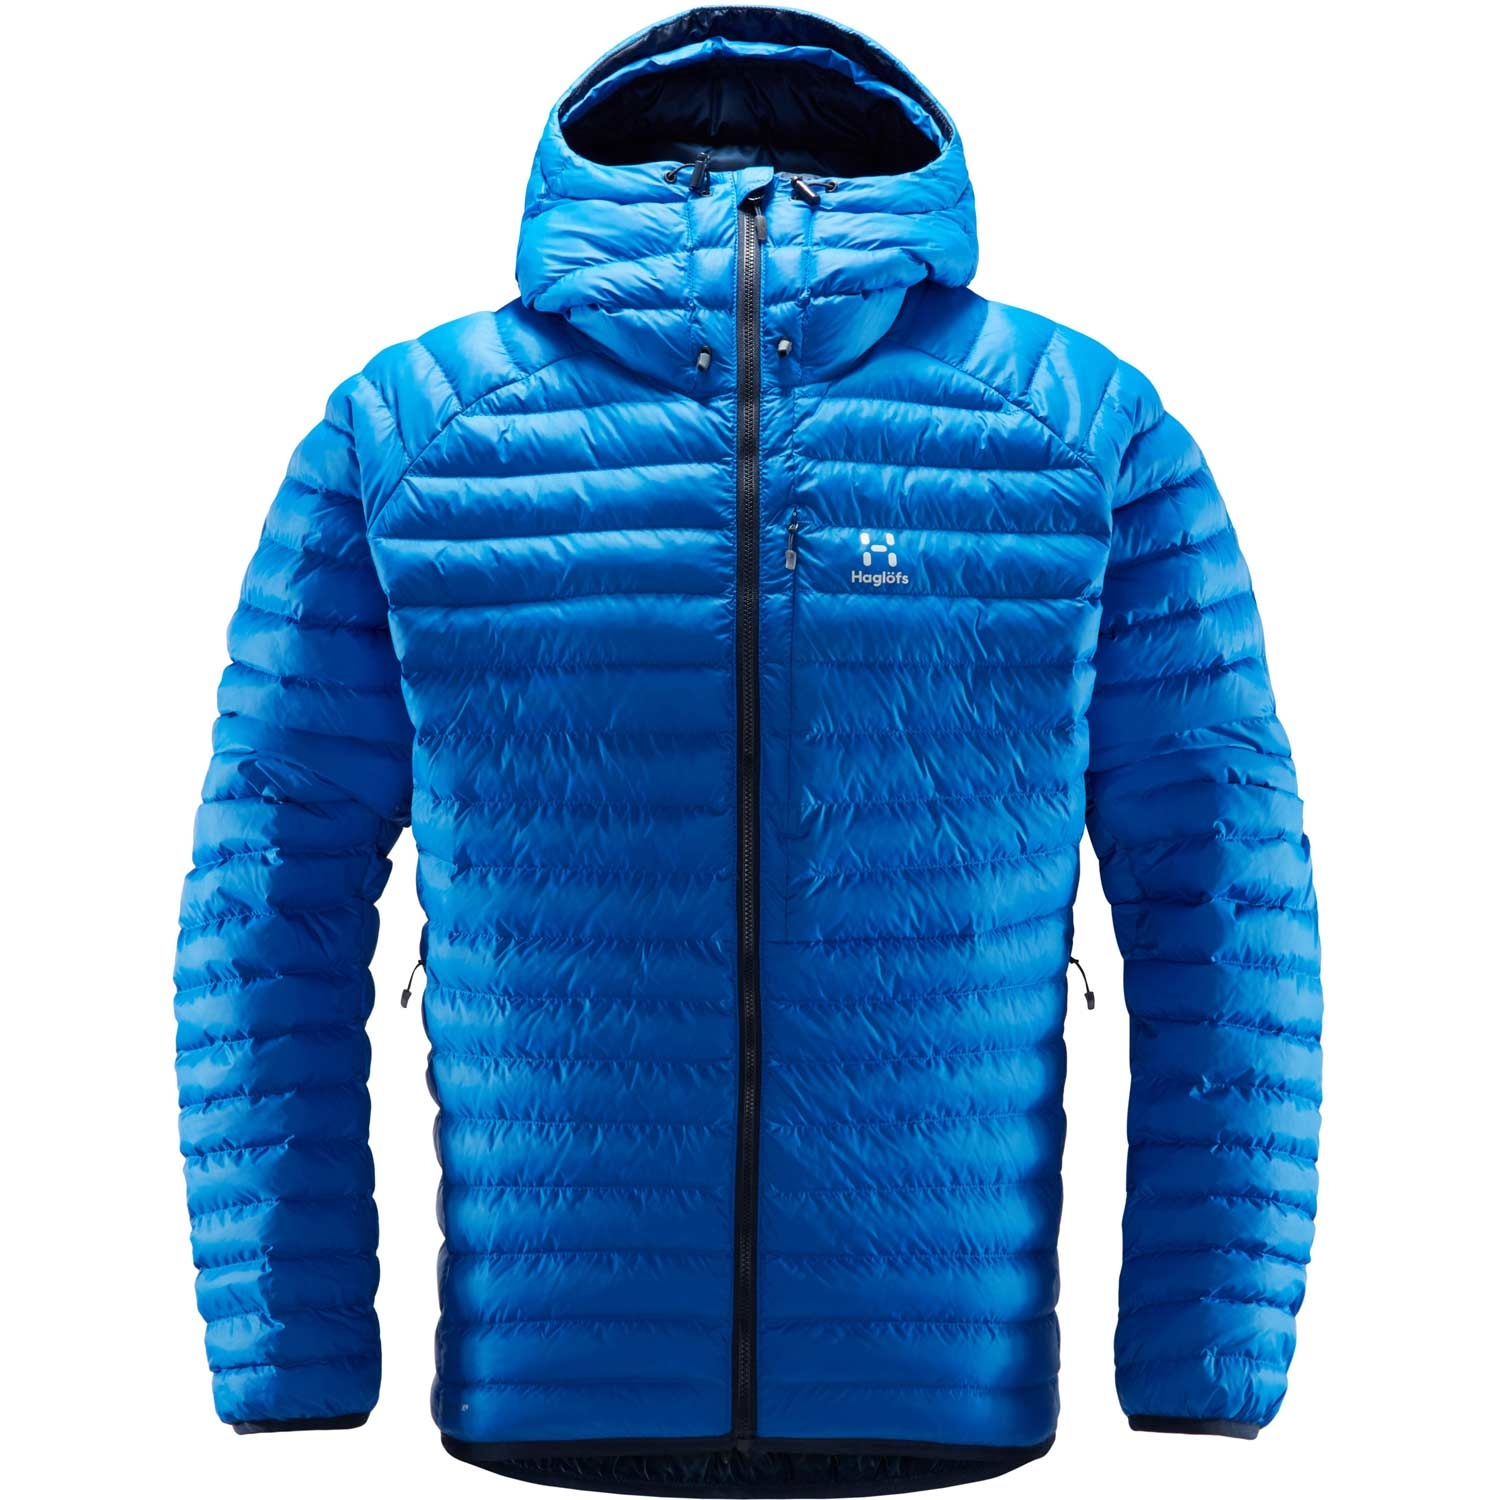 Insulated Climbing Jackets